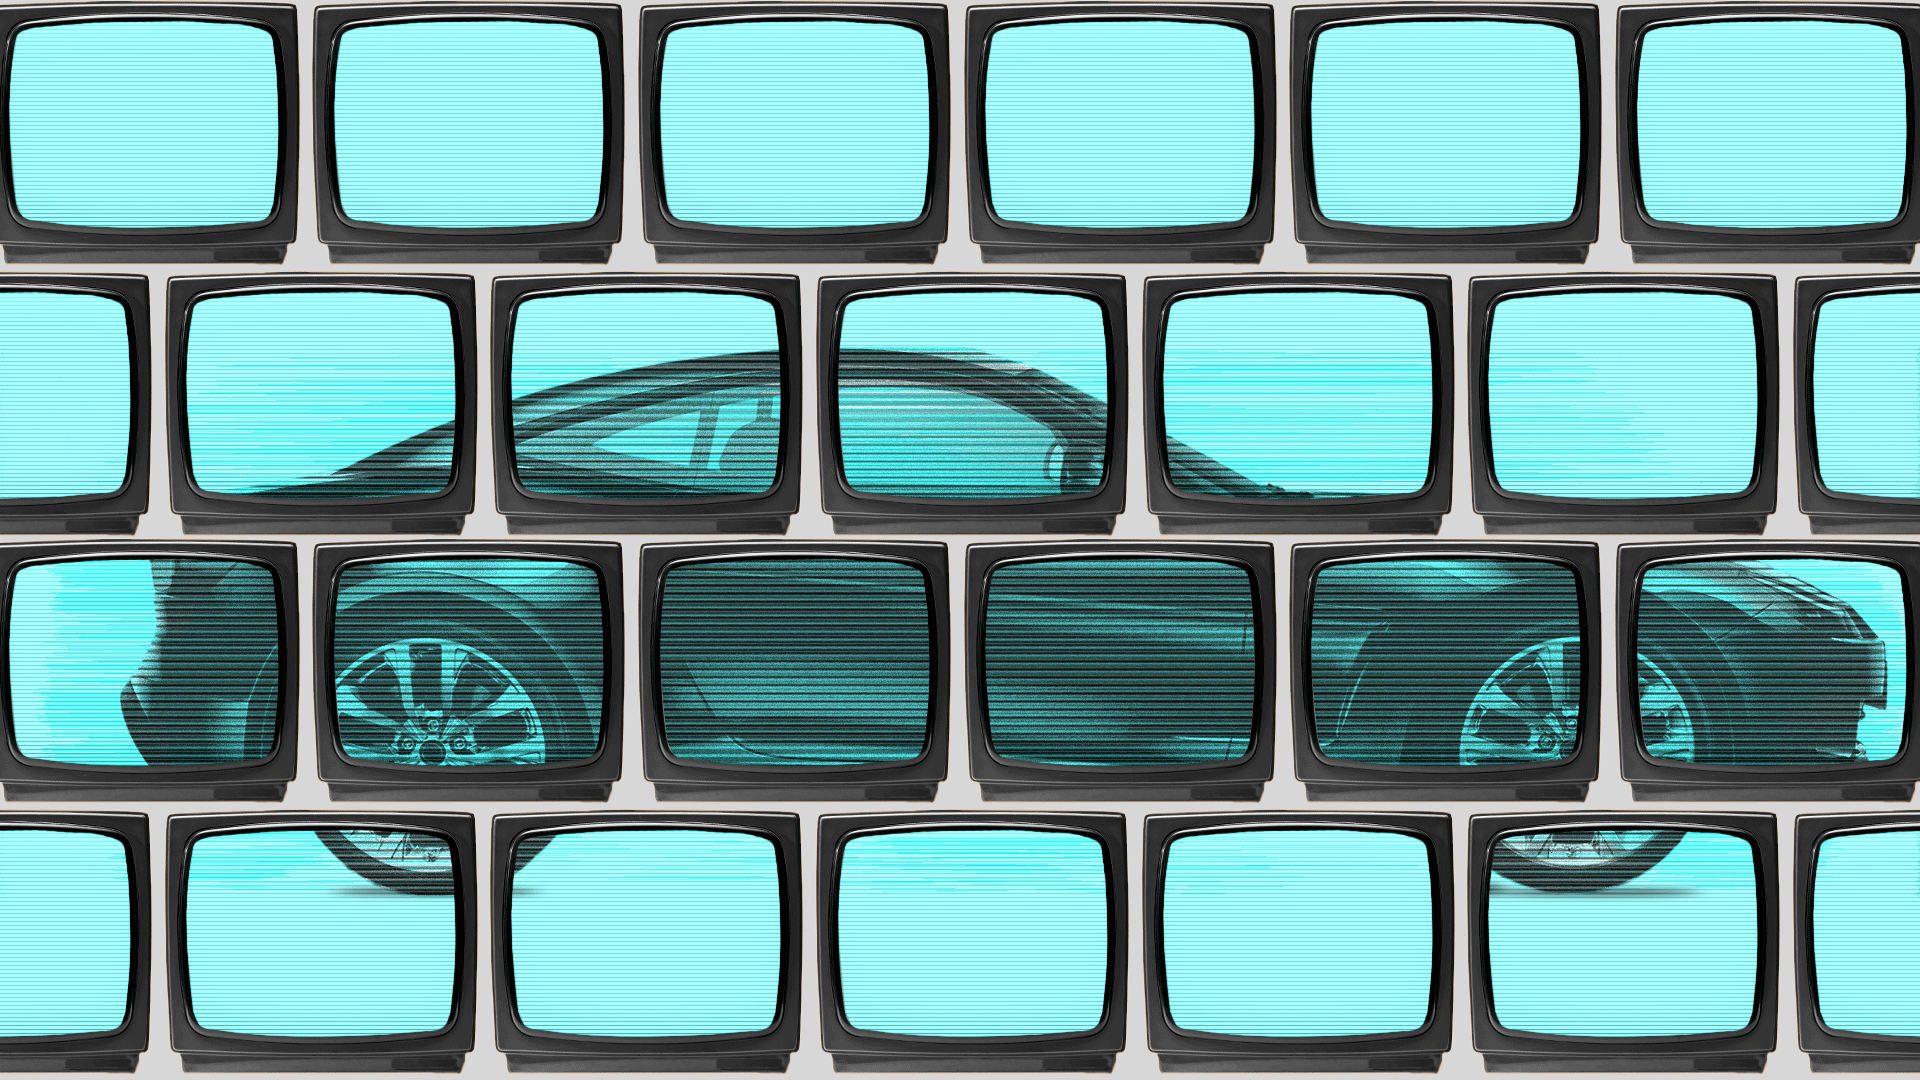 Illustration of a wall of televisions showing footage of a car.